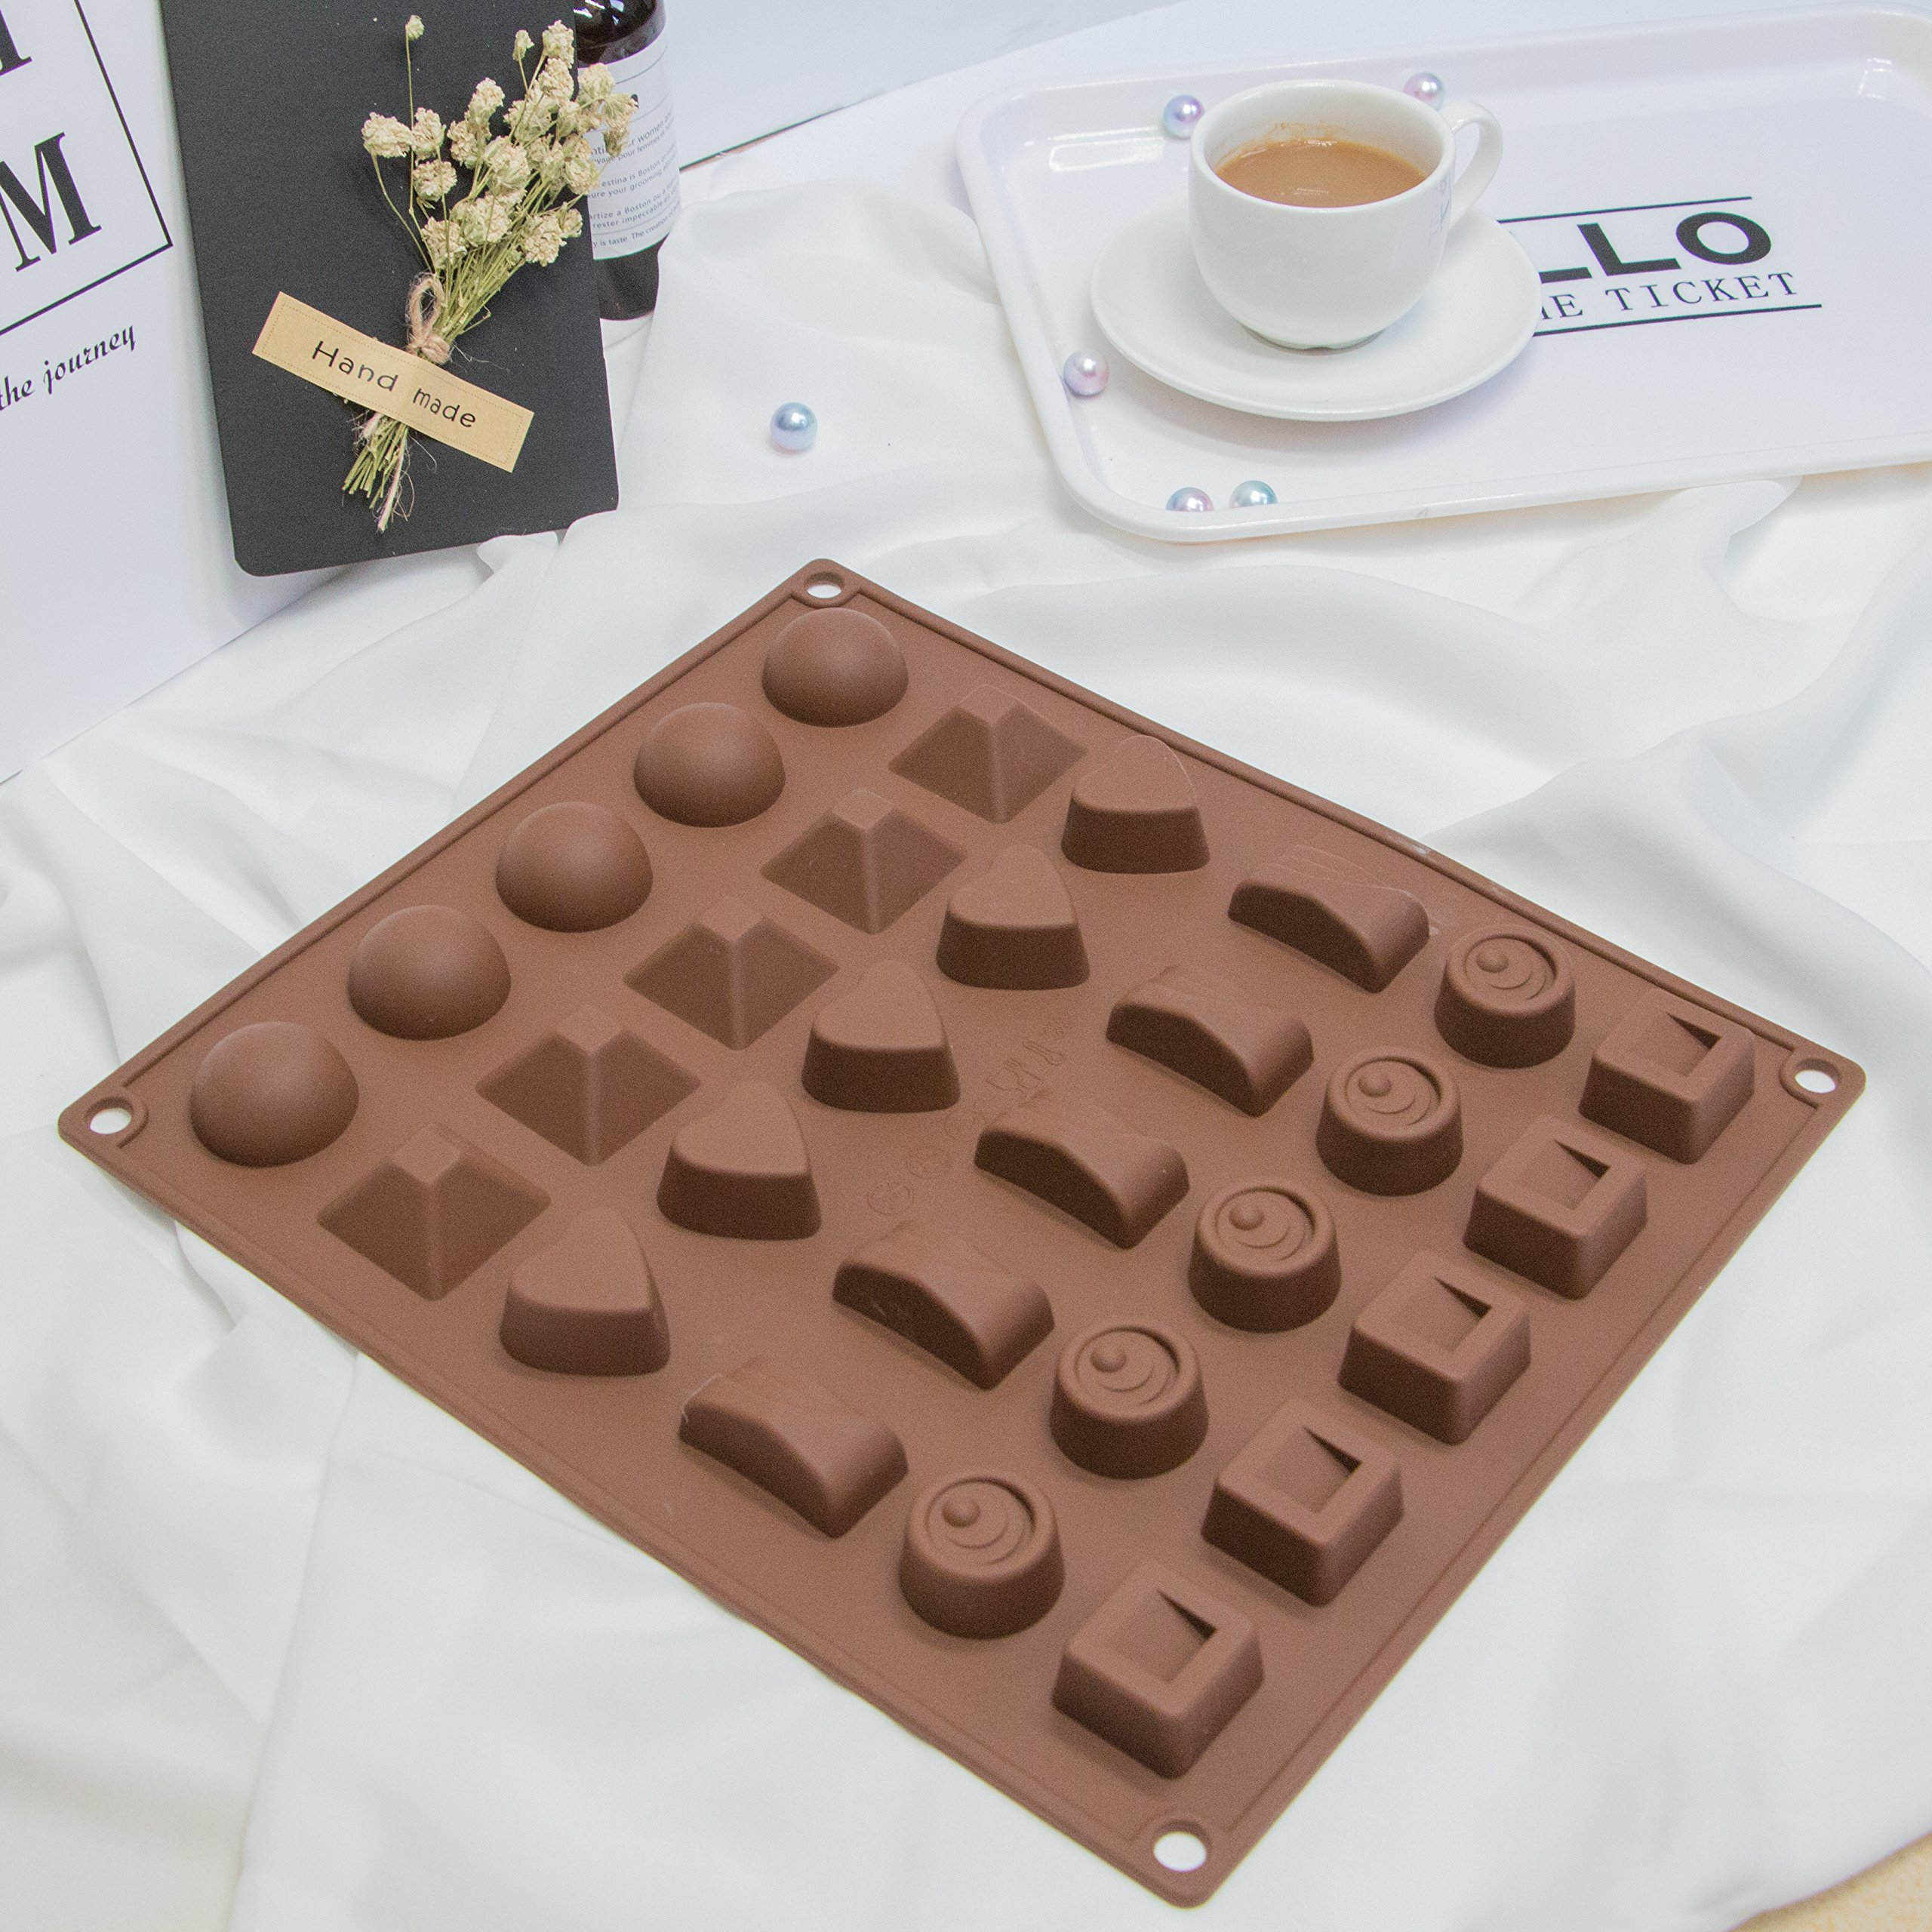 2 Pieces Silicone Baking Mold, Chocolate Candy Molds Robot for Making Cake Muffin Cupcake Gumdrop Jelly DIY by HR-International (Image #3)